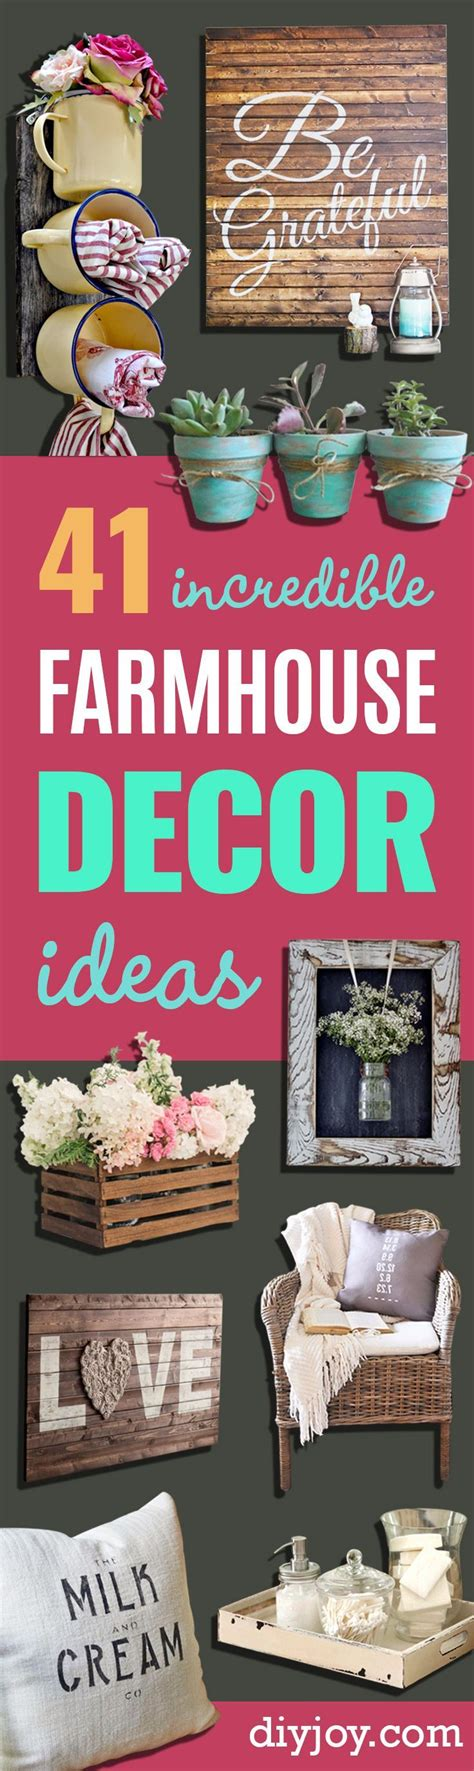 41 incredible farmhouse decor ideas page 5 of 9 diy joy 363 best images about decorating on pinterest how to